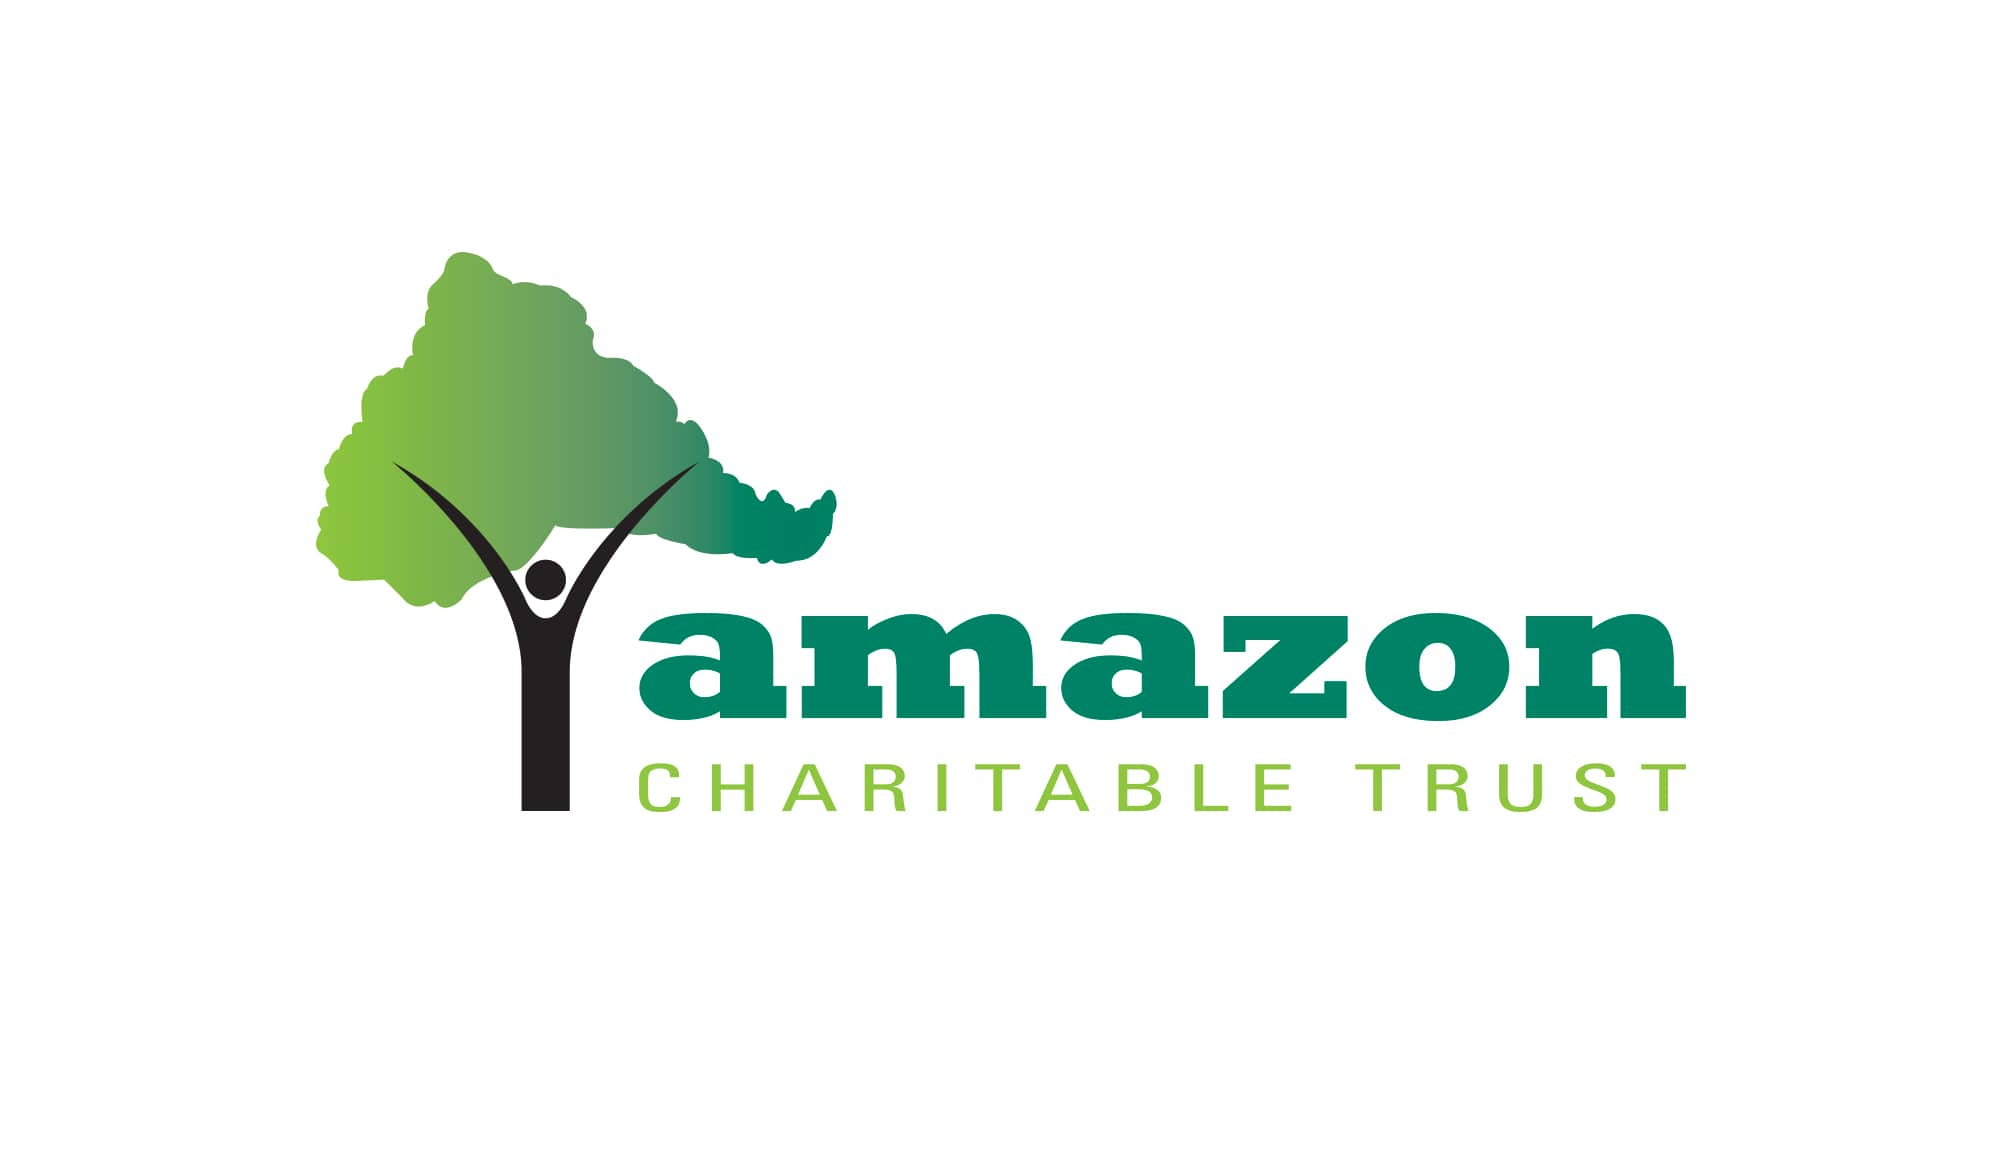 Amazon Charitable Trust - logo